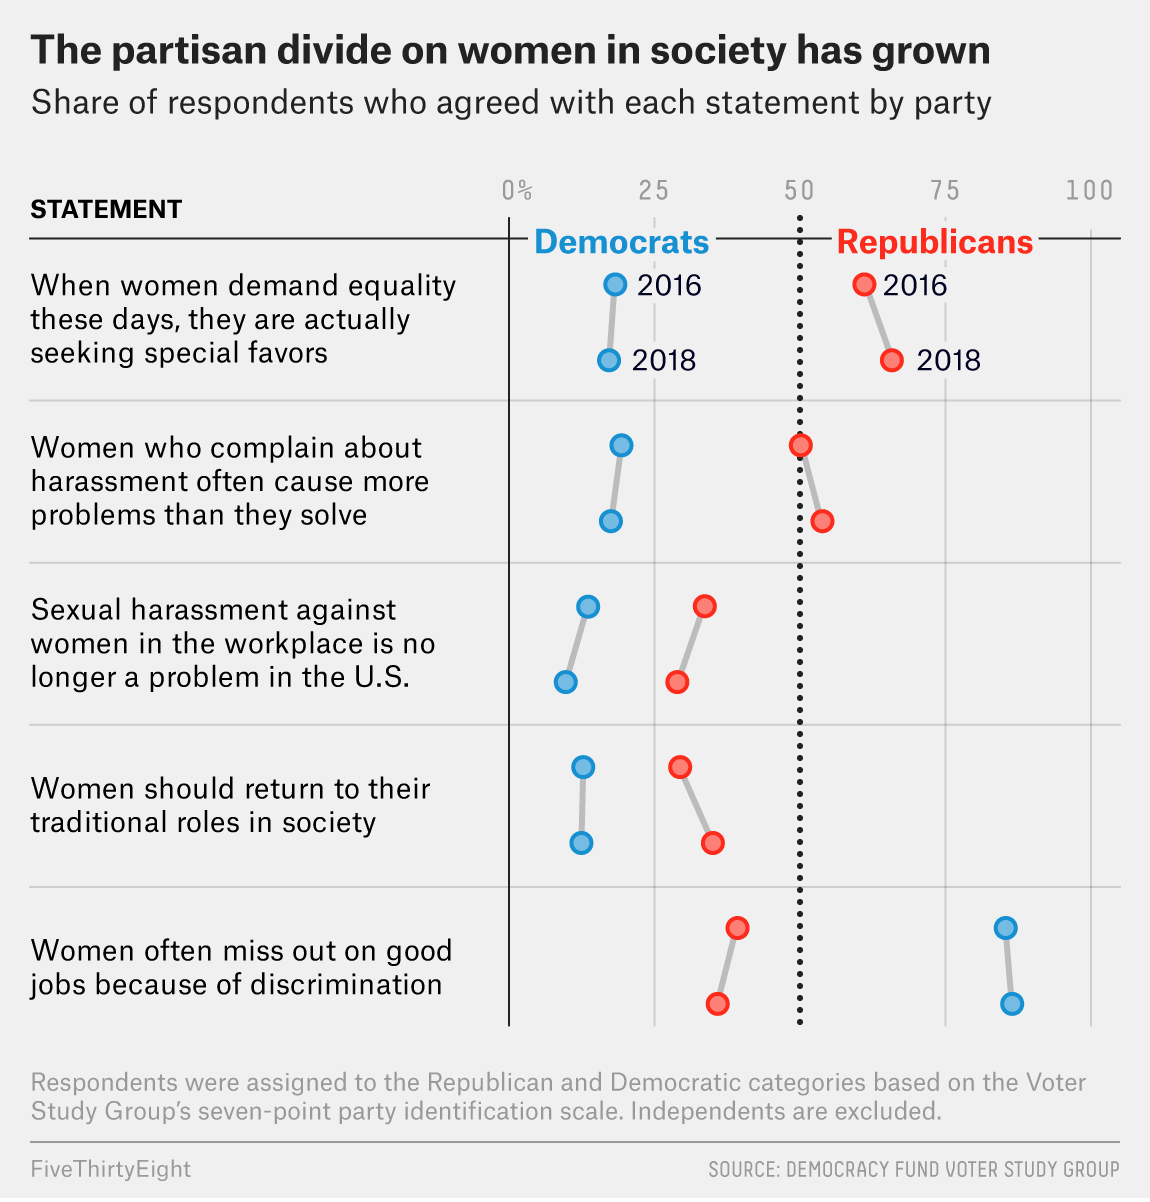 Are Americans More Divided On #MeToo Issues? | FiveThirtyEight